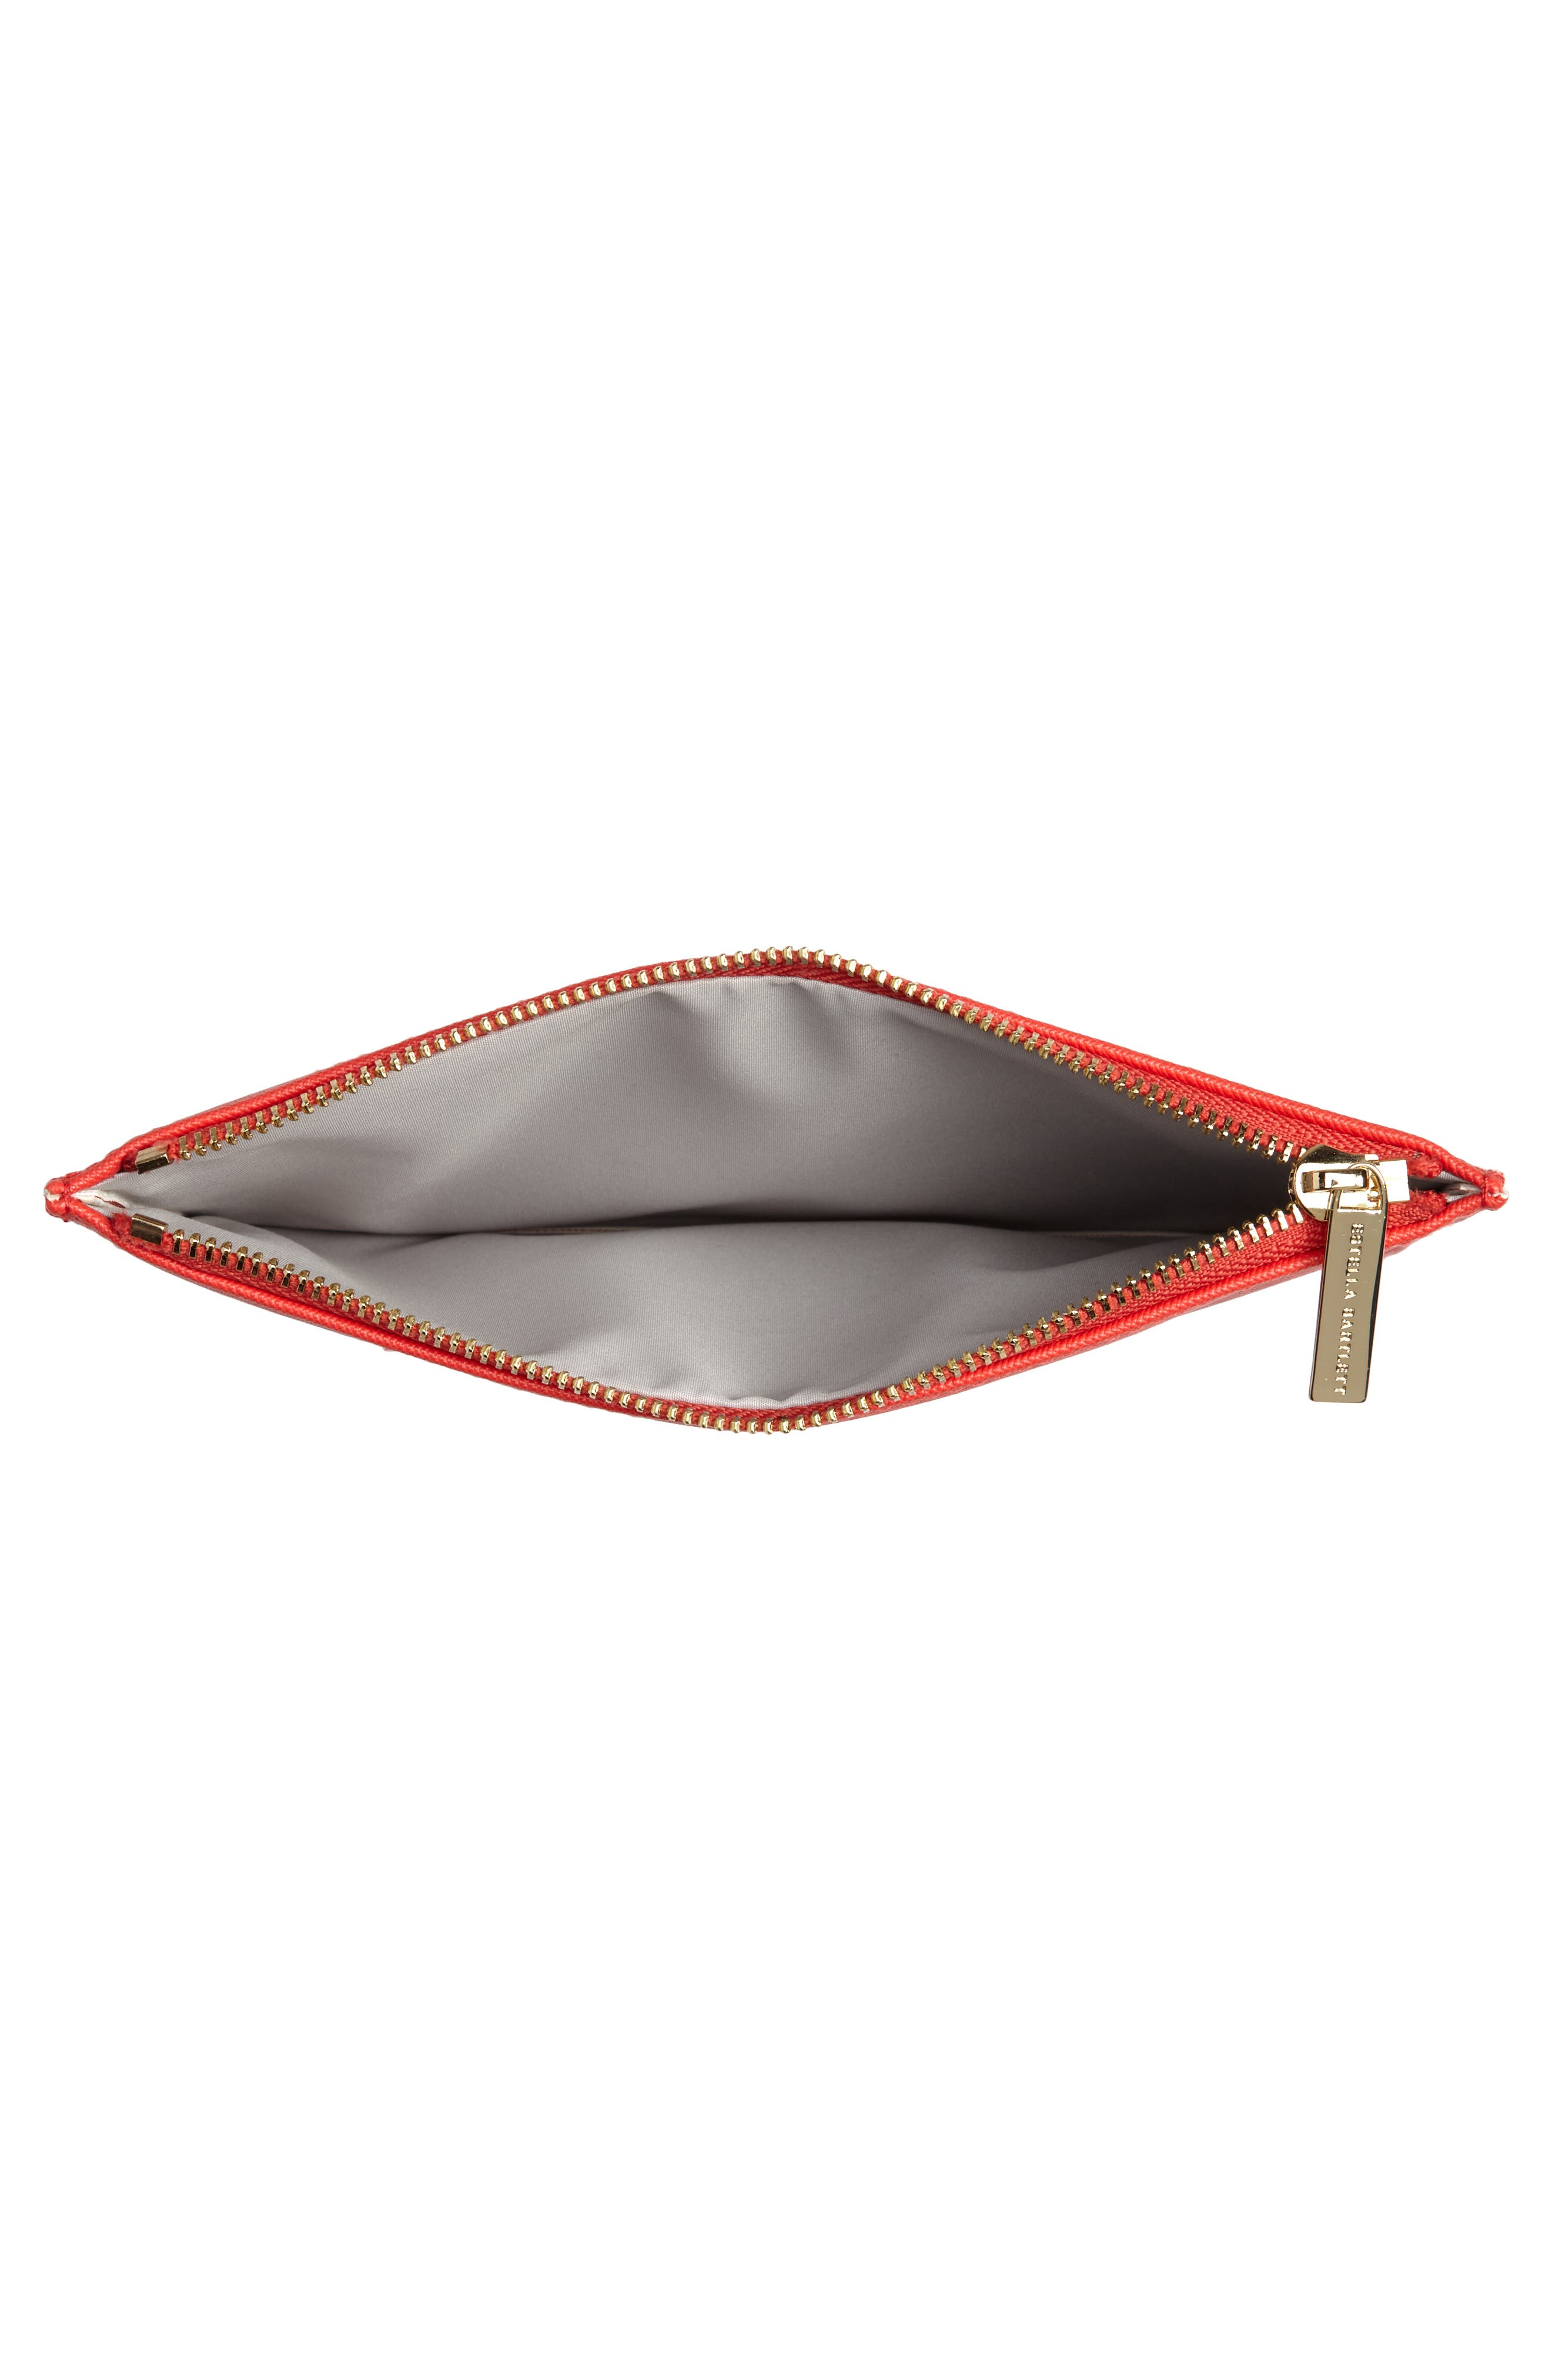 XOXO Medium Faux Leather Pouch,                             Alternate thumbnail 4, color,                             Red